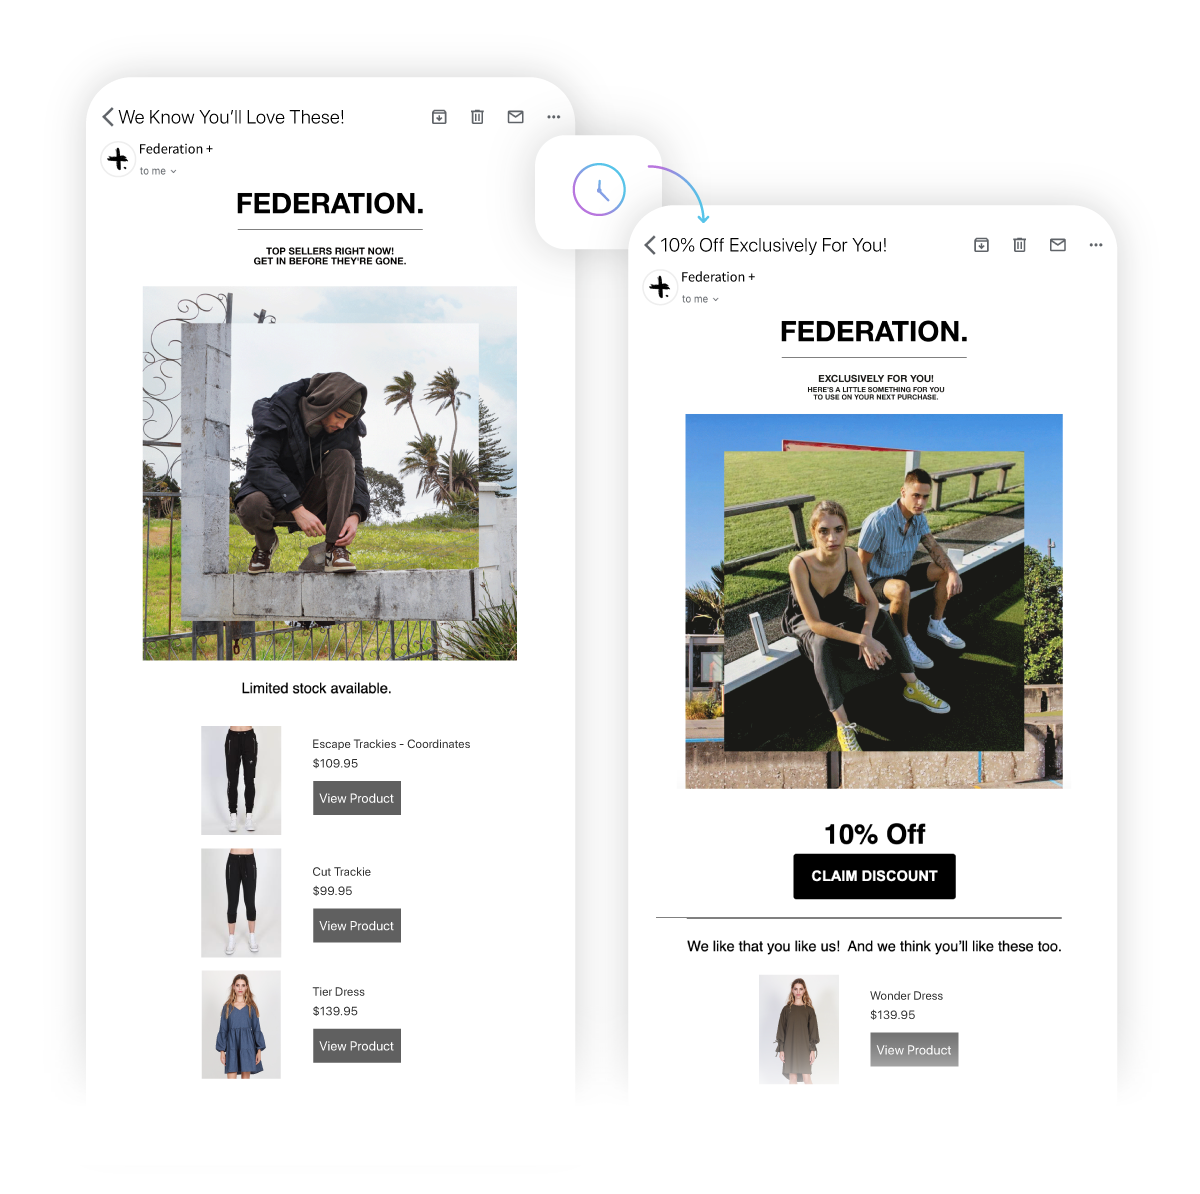 Federation + best customer email automation flow with 10% discount